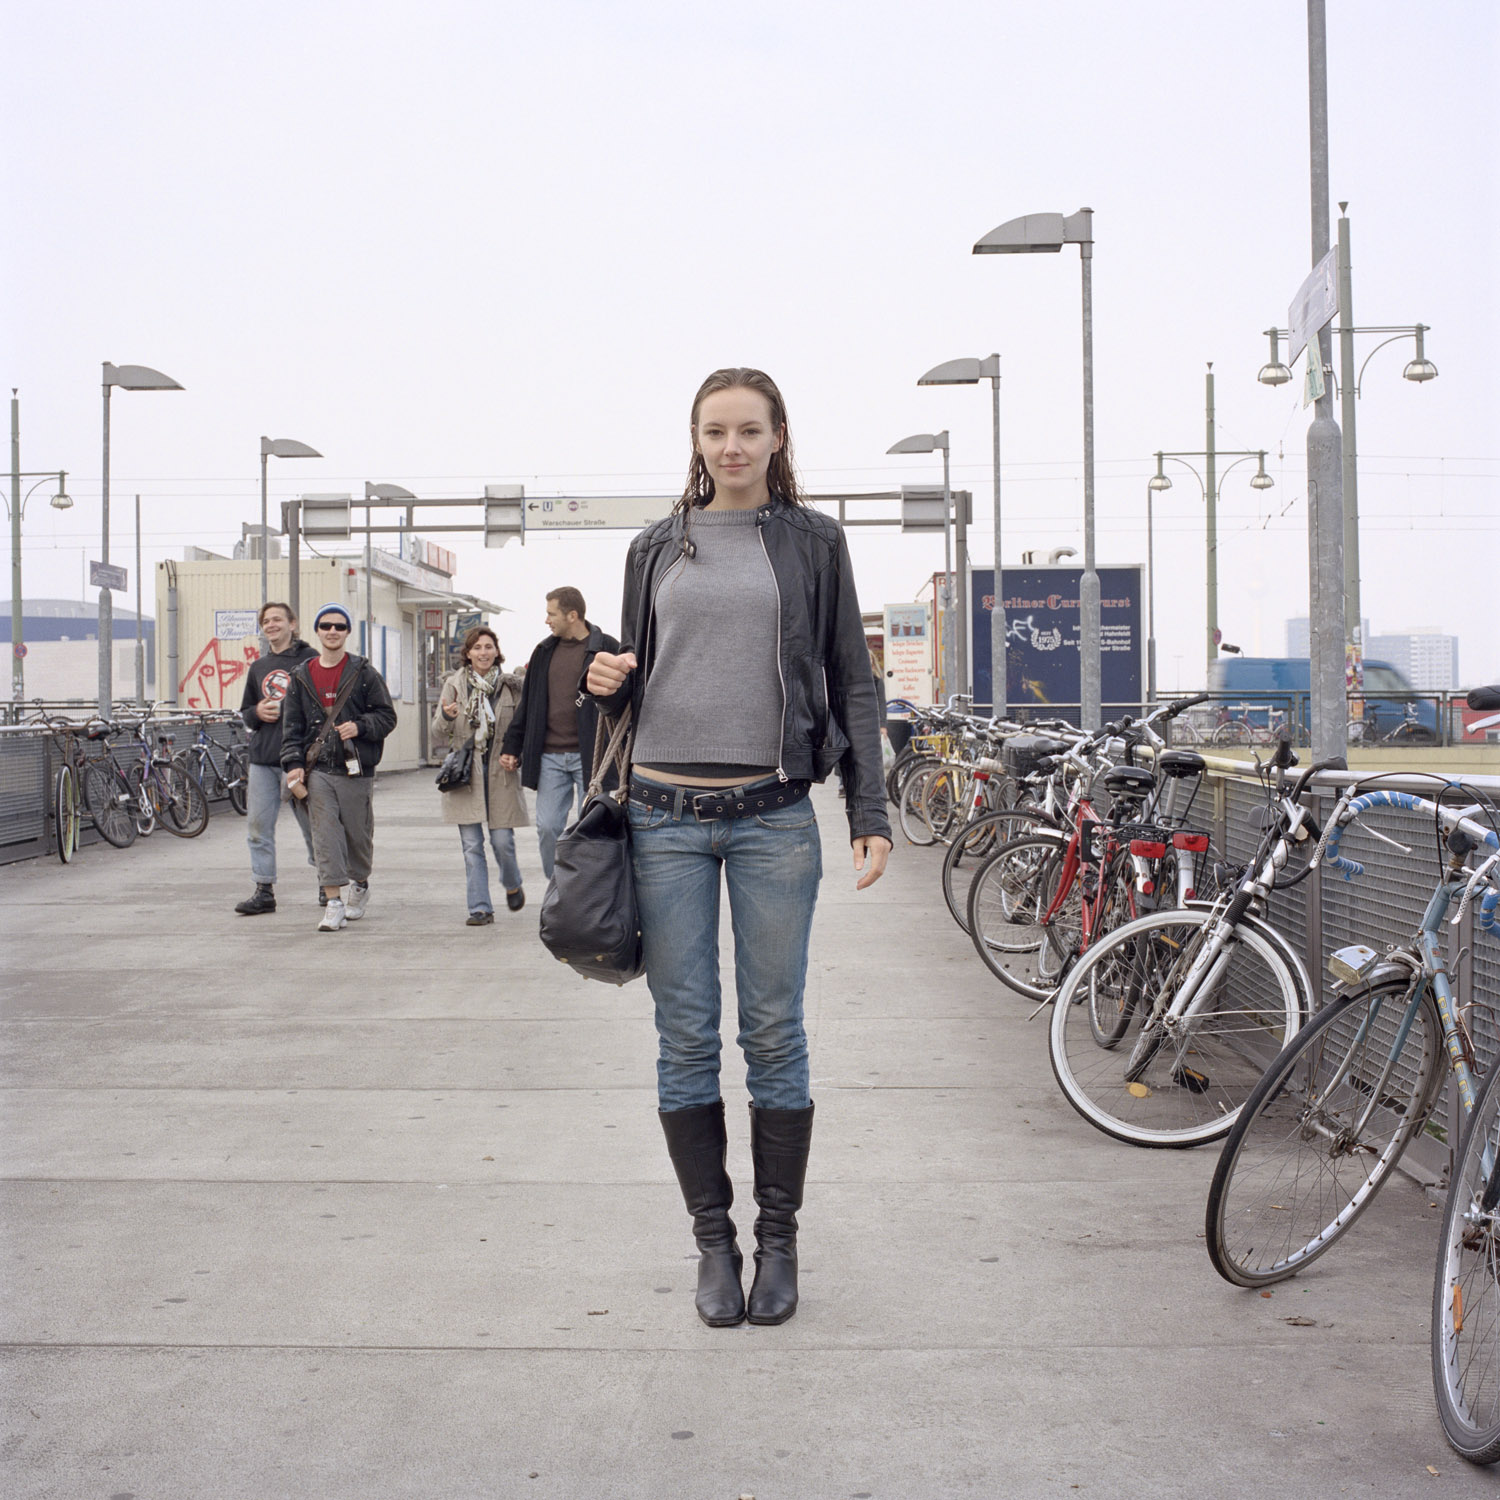 Franziska, 2008, from Berlin Project by Abby Storey